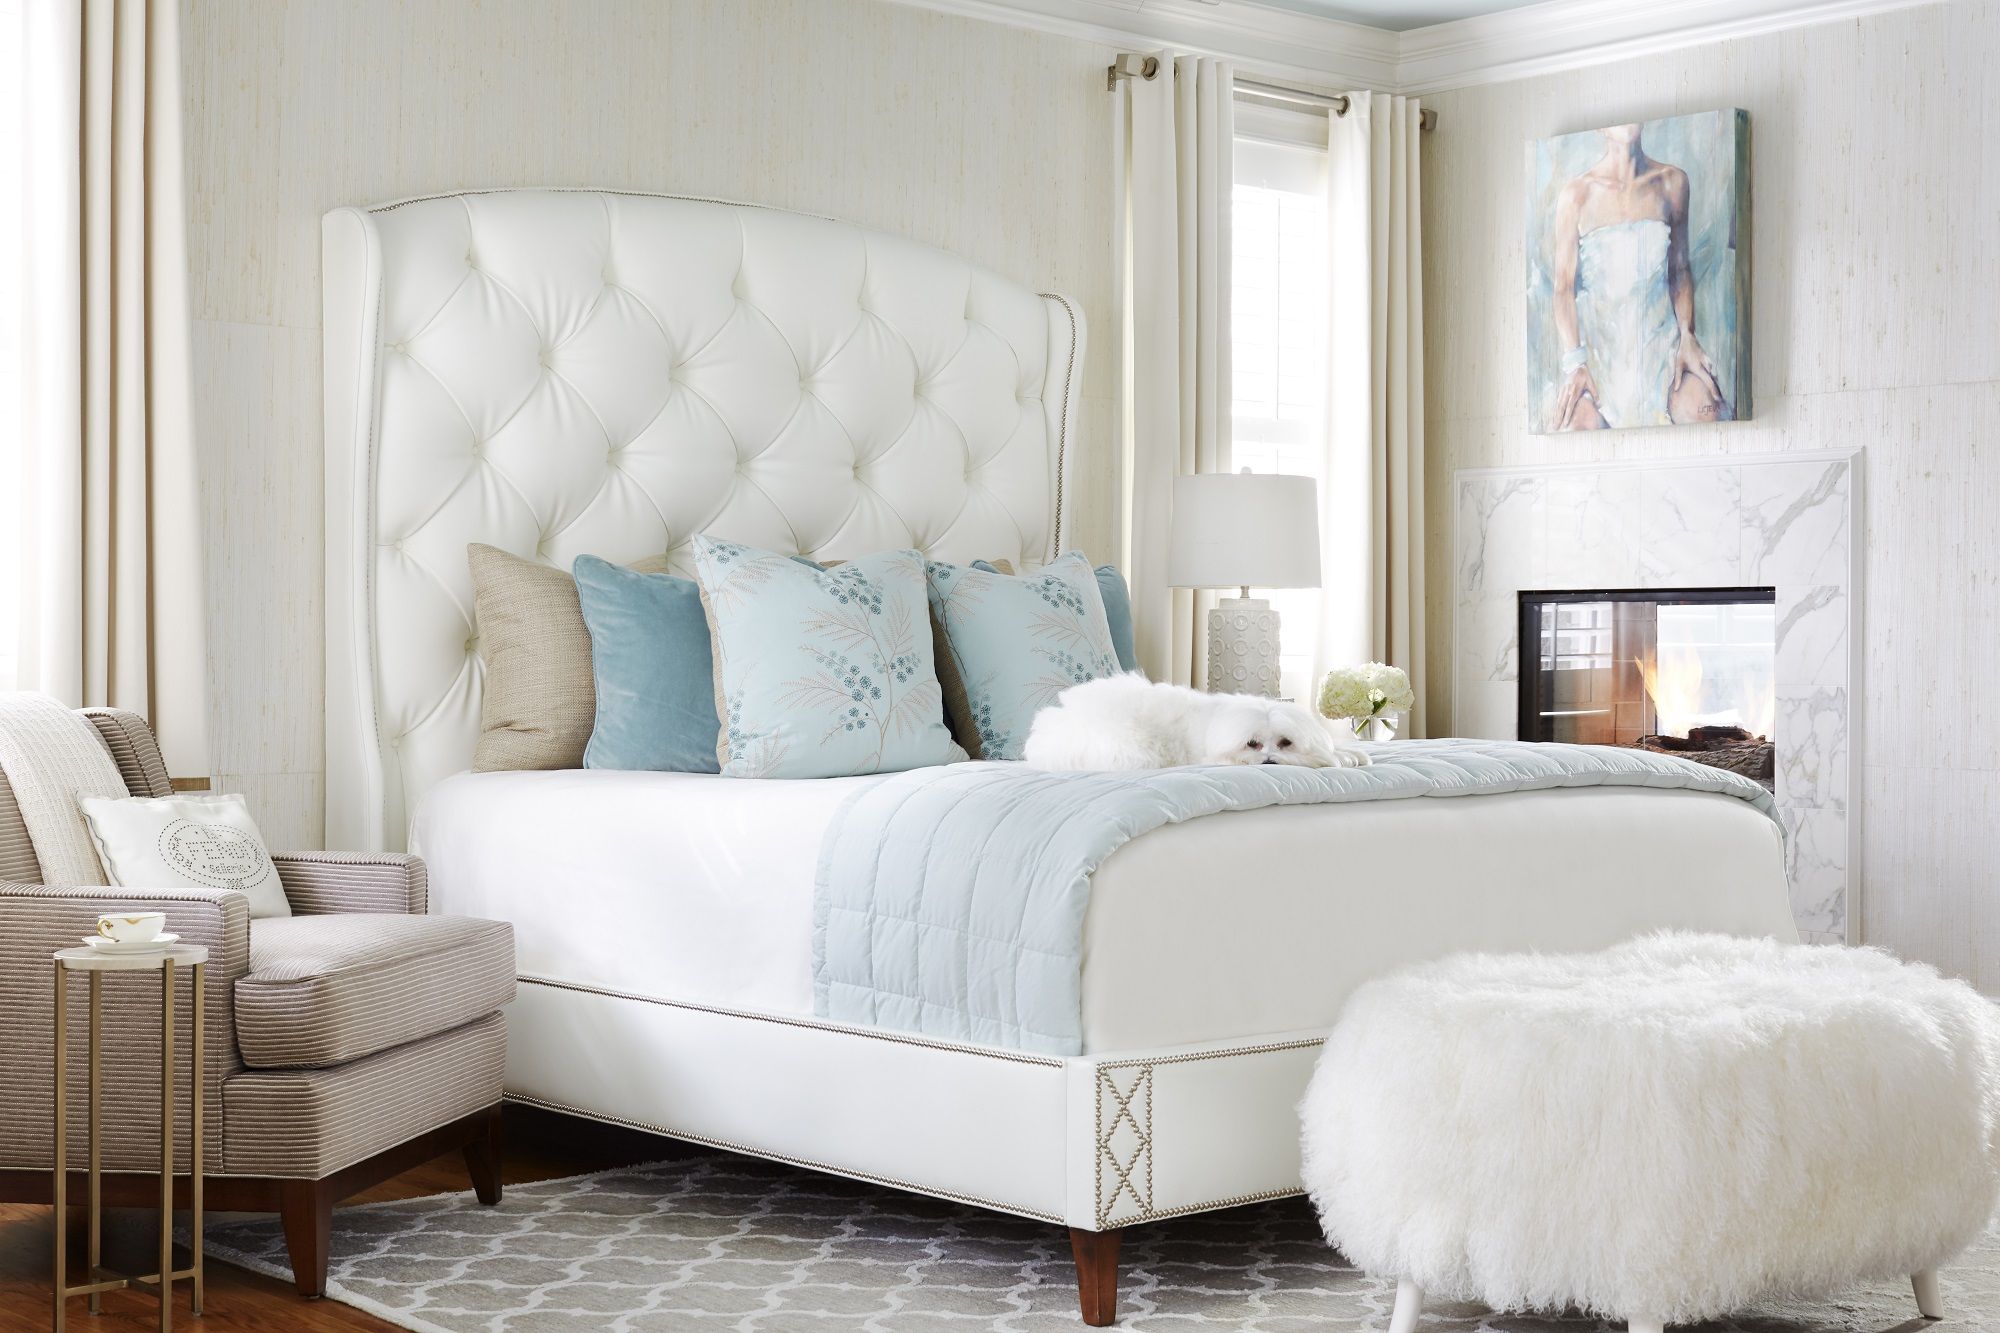 Kristin-Drohan-Bedroom-Interior-Design-Georgia